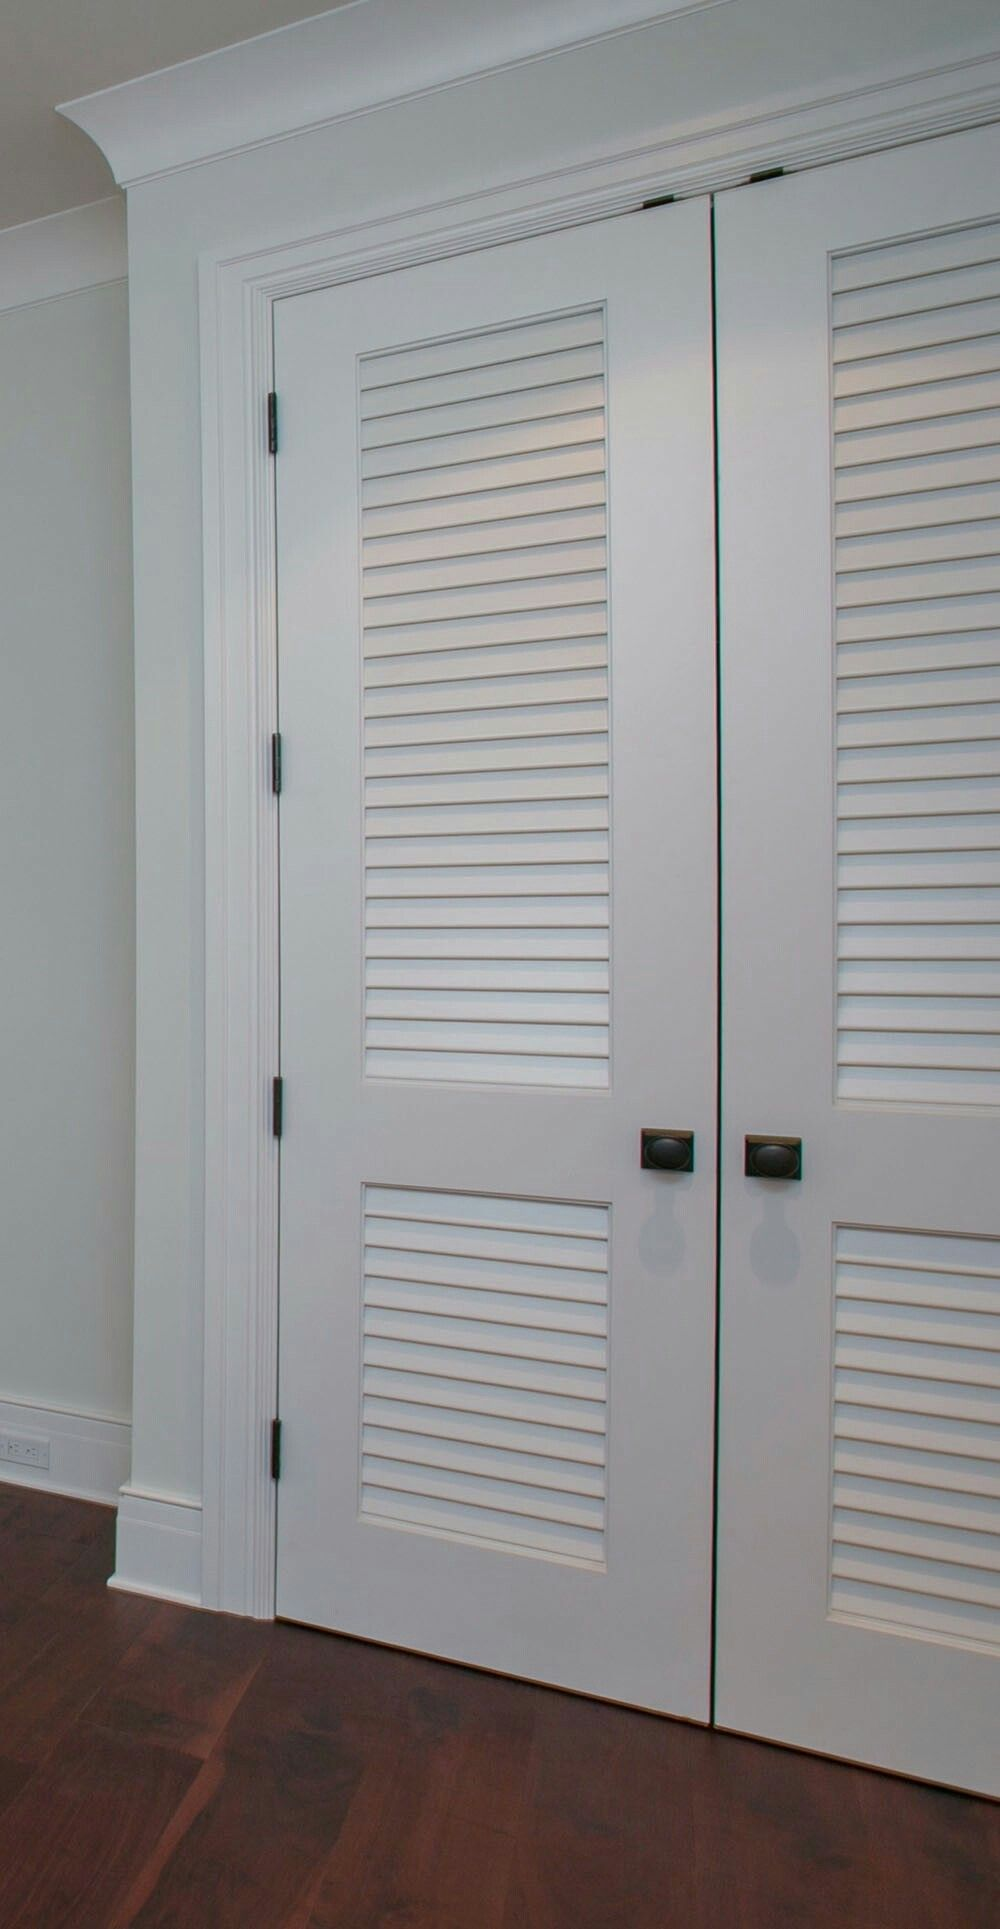 Basement, Louvered Door Ventilation from Playroom to